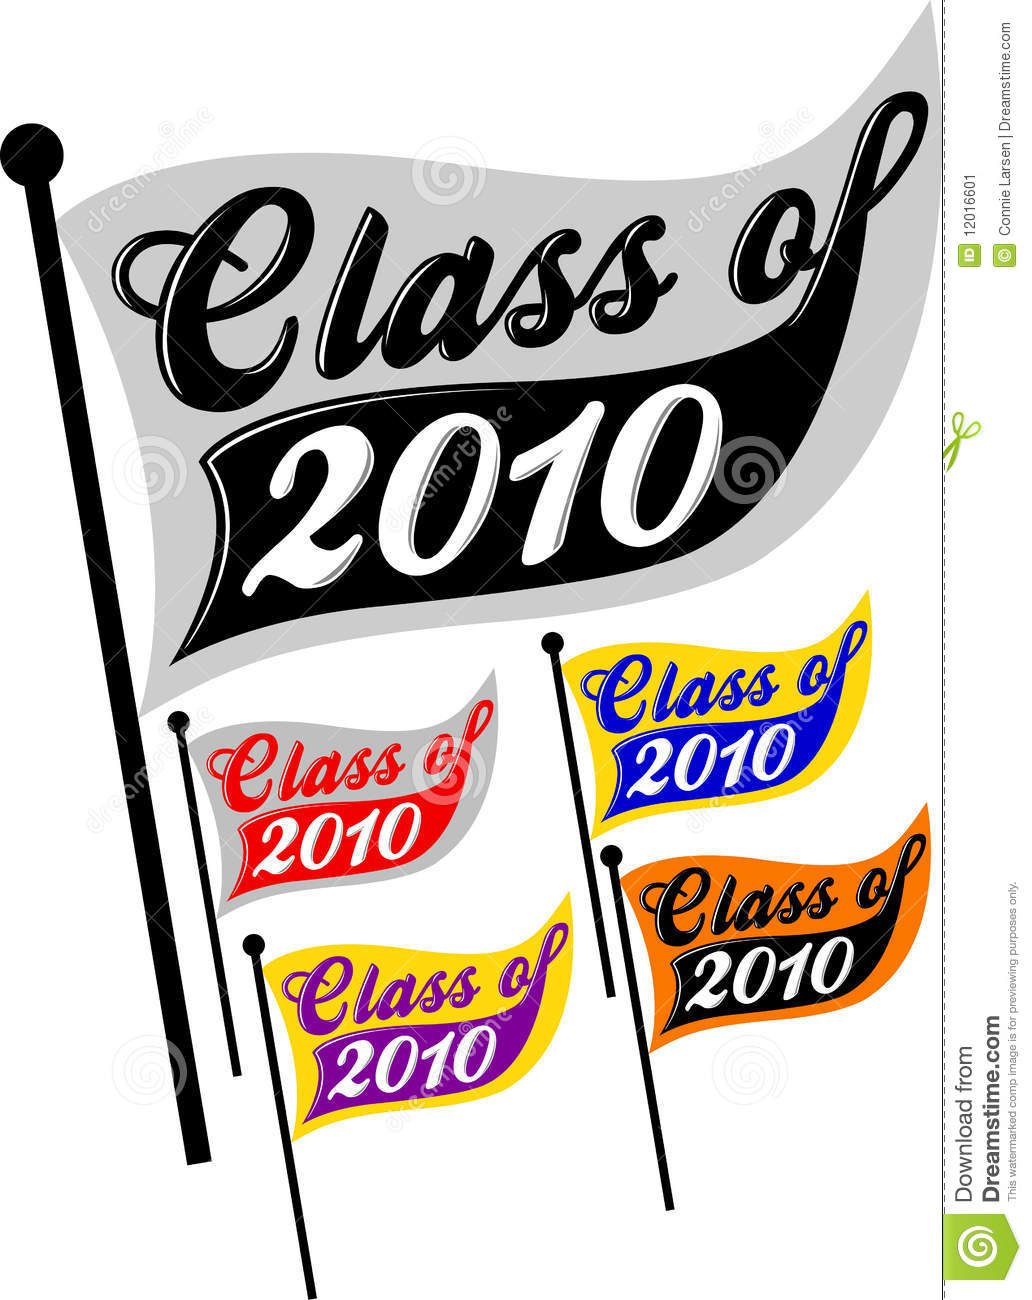 Class Of 2010 Pennant/eps Stock Image.